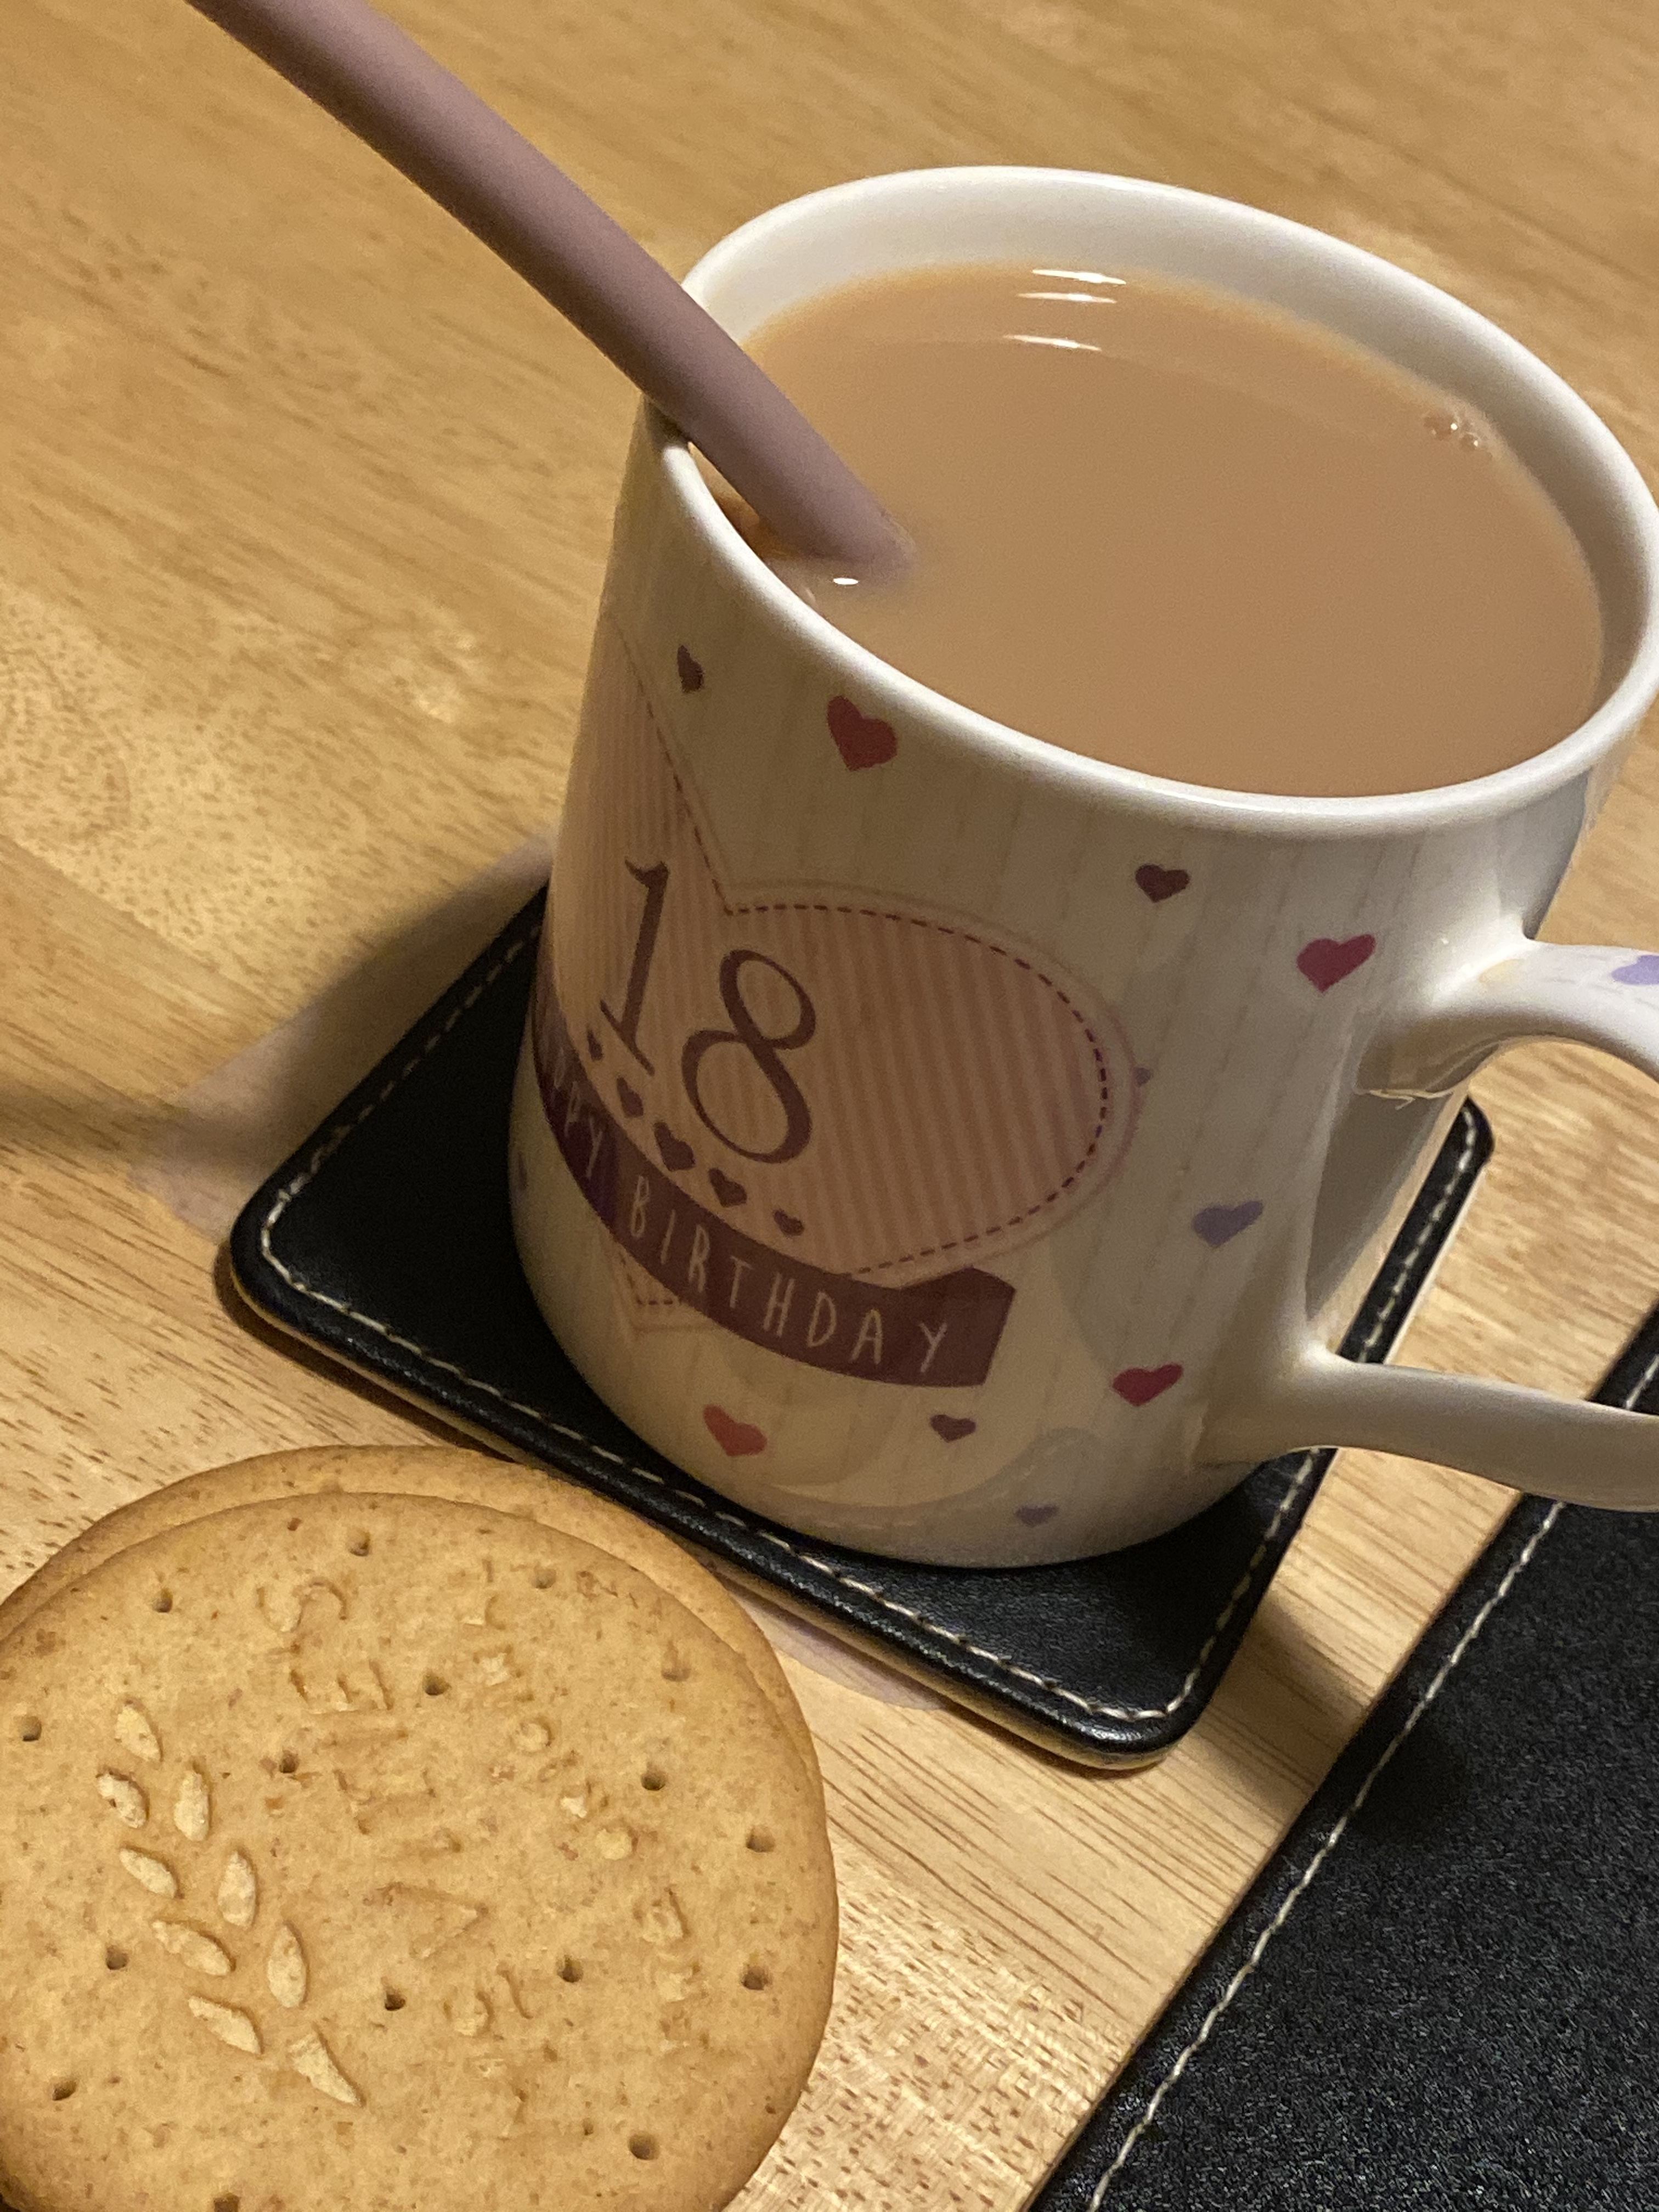 2 digestive biscuits with a a cup of tea, with a brown straw. This is on a black placemat on an oak table. The cup has small love heart with 18 in a big love heart and reads 'Happy Birthday' on a purple banner.